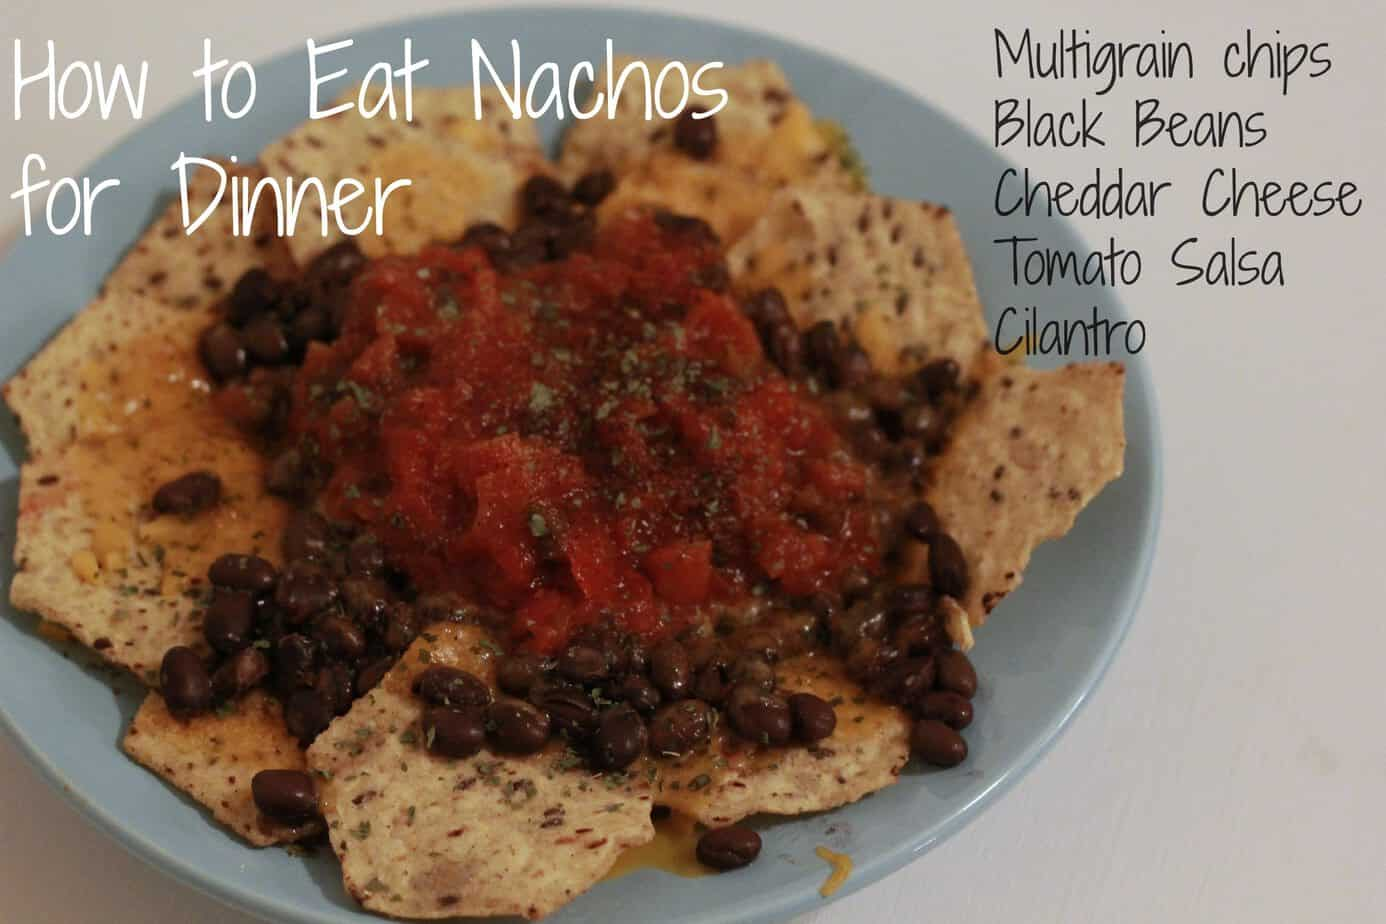 How to Eat Nachos for Dinner